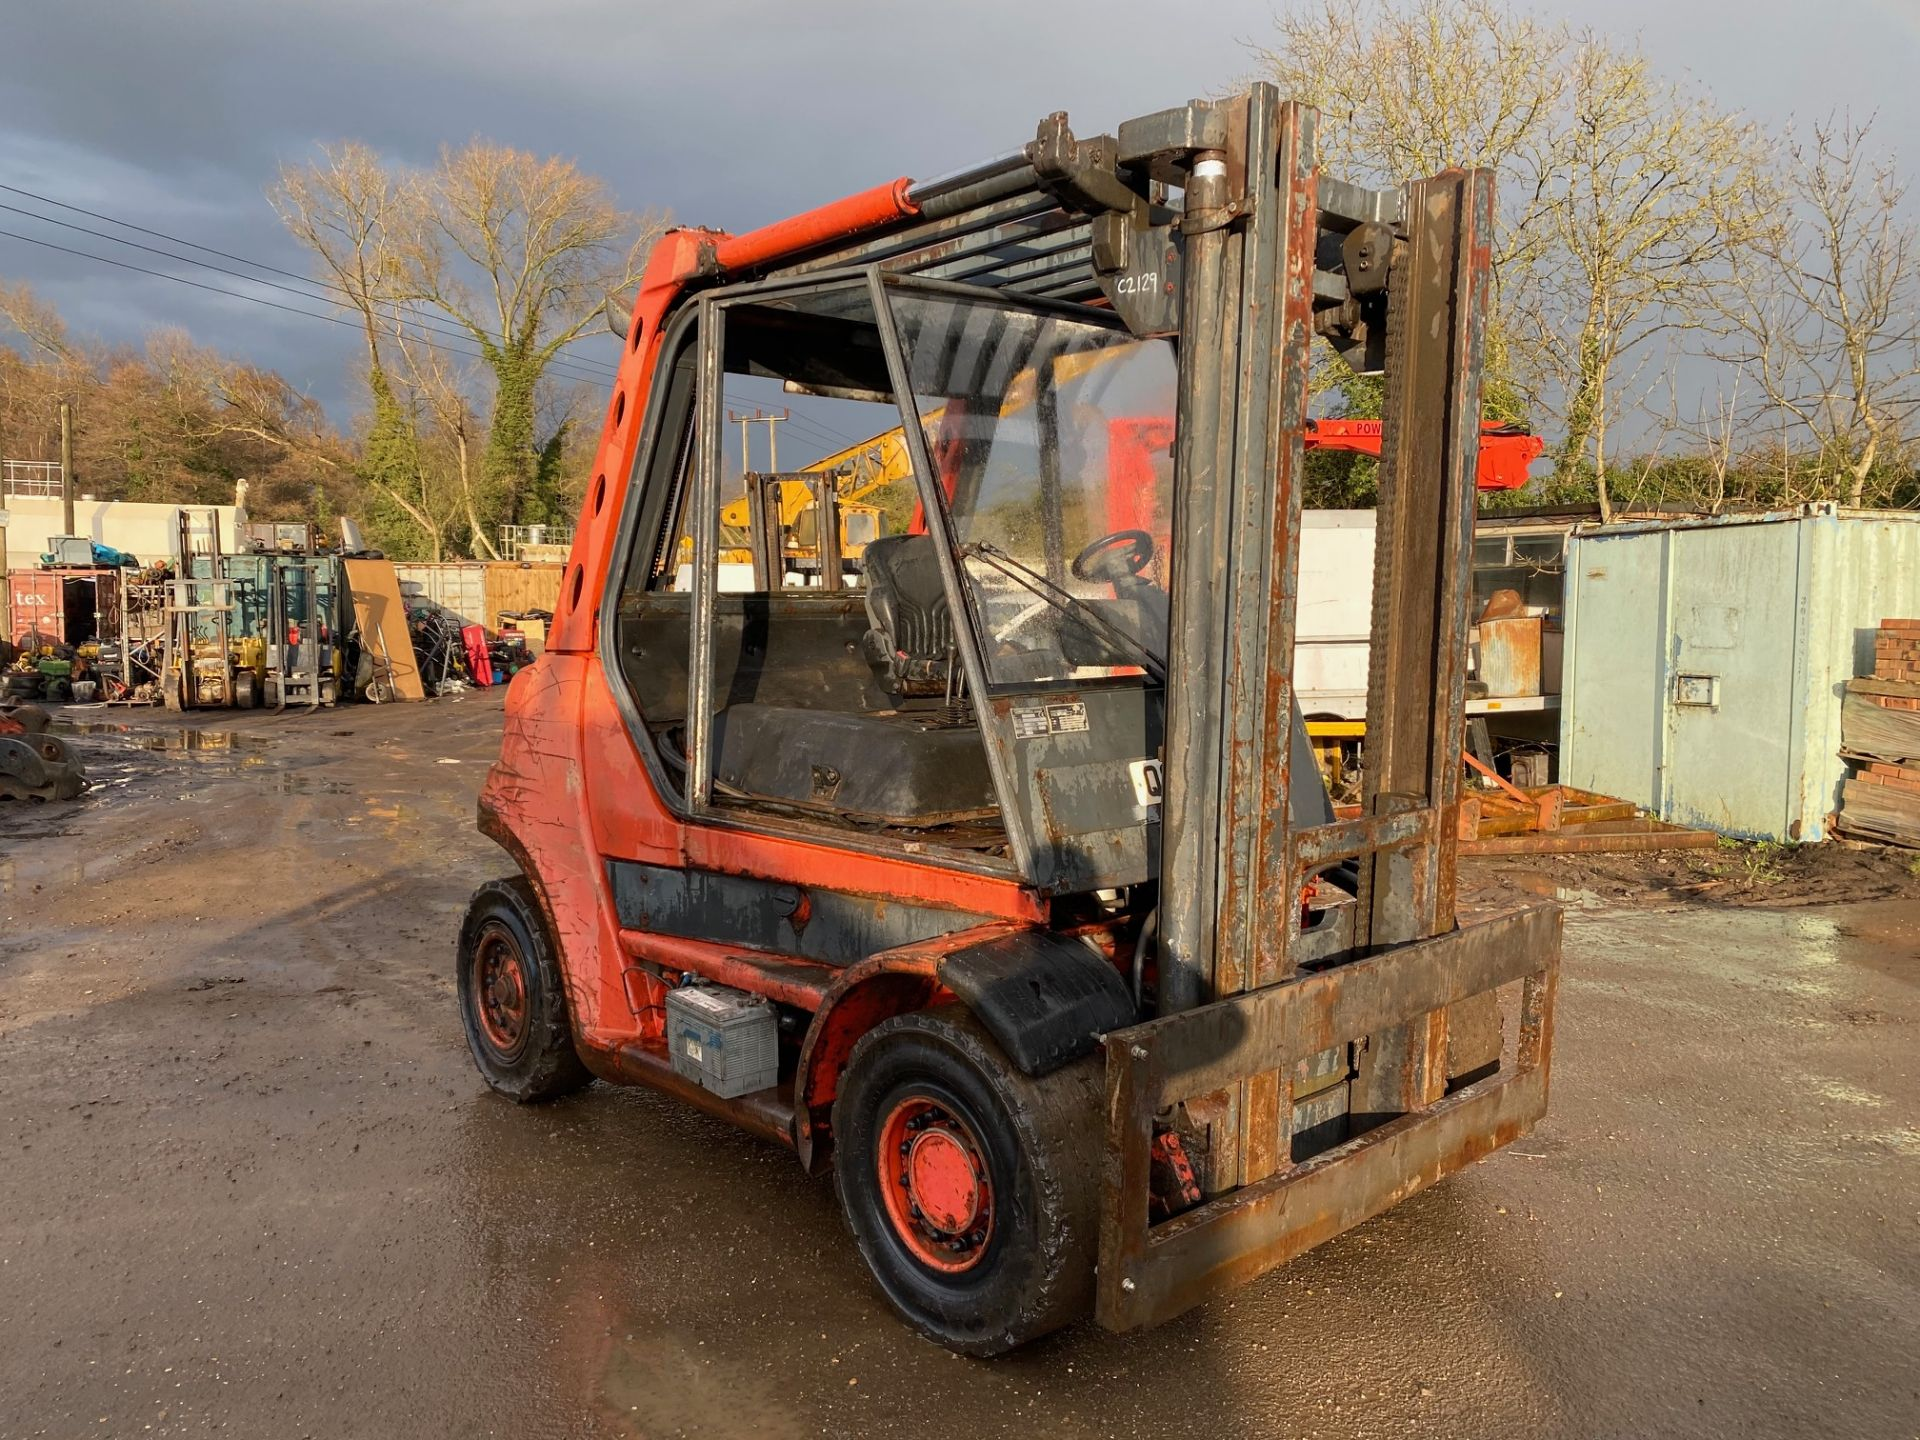 1998 Linde H60D forklift, 8200 hours, Deutz 6 cylinder engine Forks will be included with the truck - Image 4 of 5